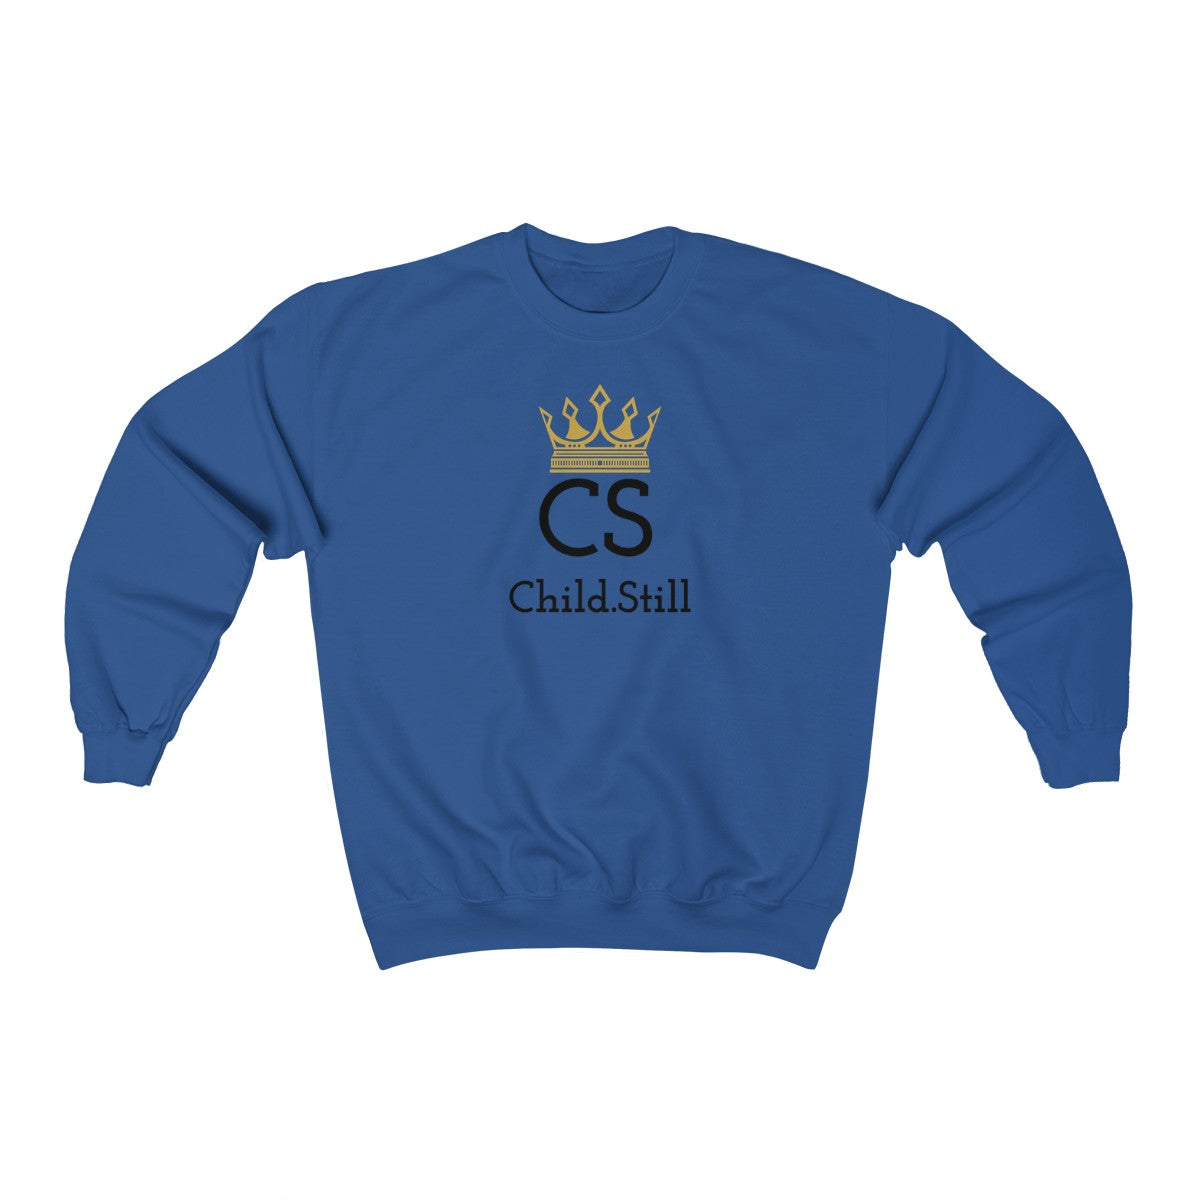 Child Still Sweatshirt